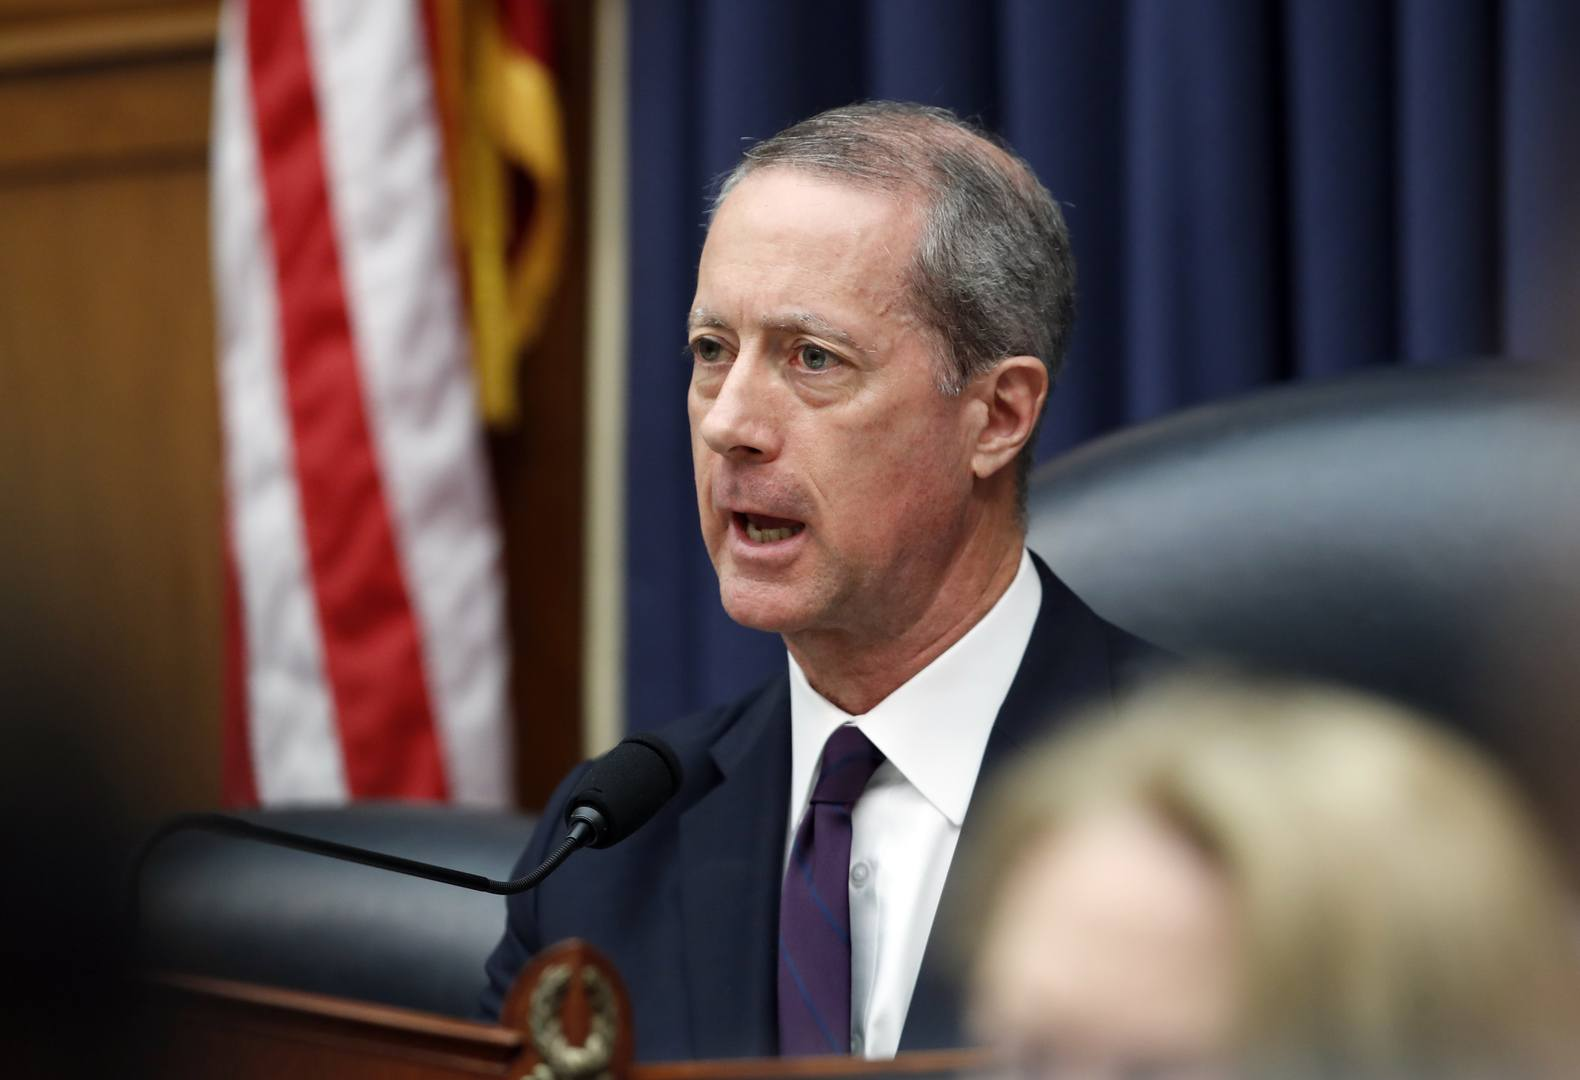 House Armed Services Committee Chairman Mac Thornberry, R-Texas, speaks during a hearing on the FY2019 budget with Defense Secretary Jim Mattis, Joint Chiefs Chairman Gen. Joseph Dunford, and Under Secretary of Defense (Comptroller) and Chief Financial Officer David L. Norquist, on Capitol Hill, Thursday, April 12, 2018 in Washington. (AP Photo/Alex Brandon)